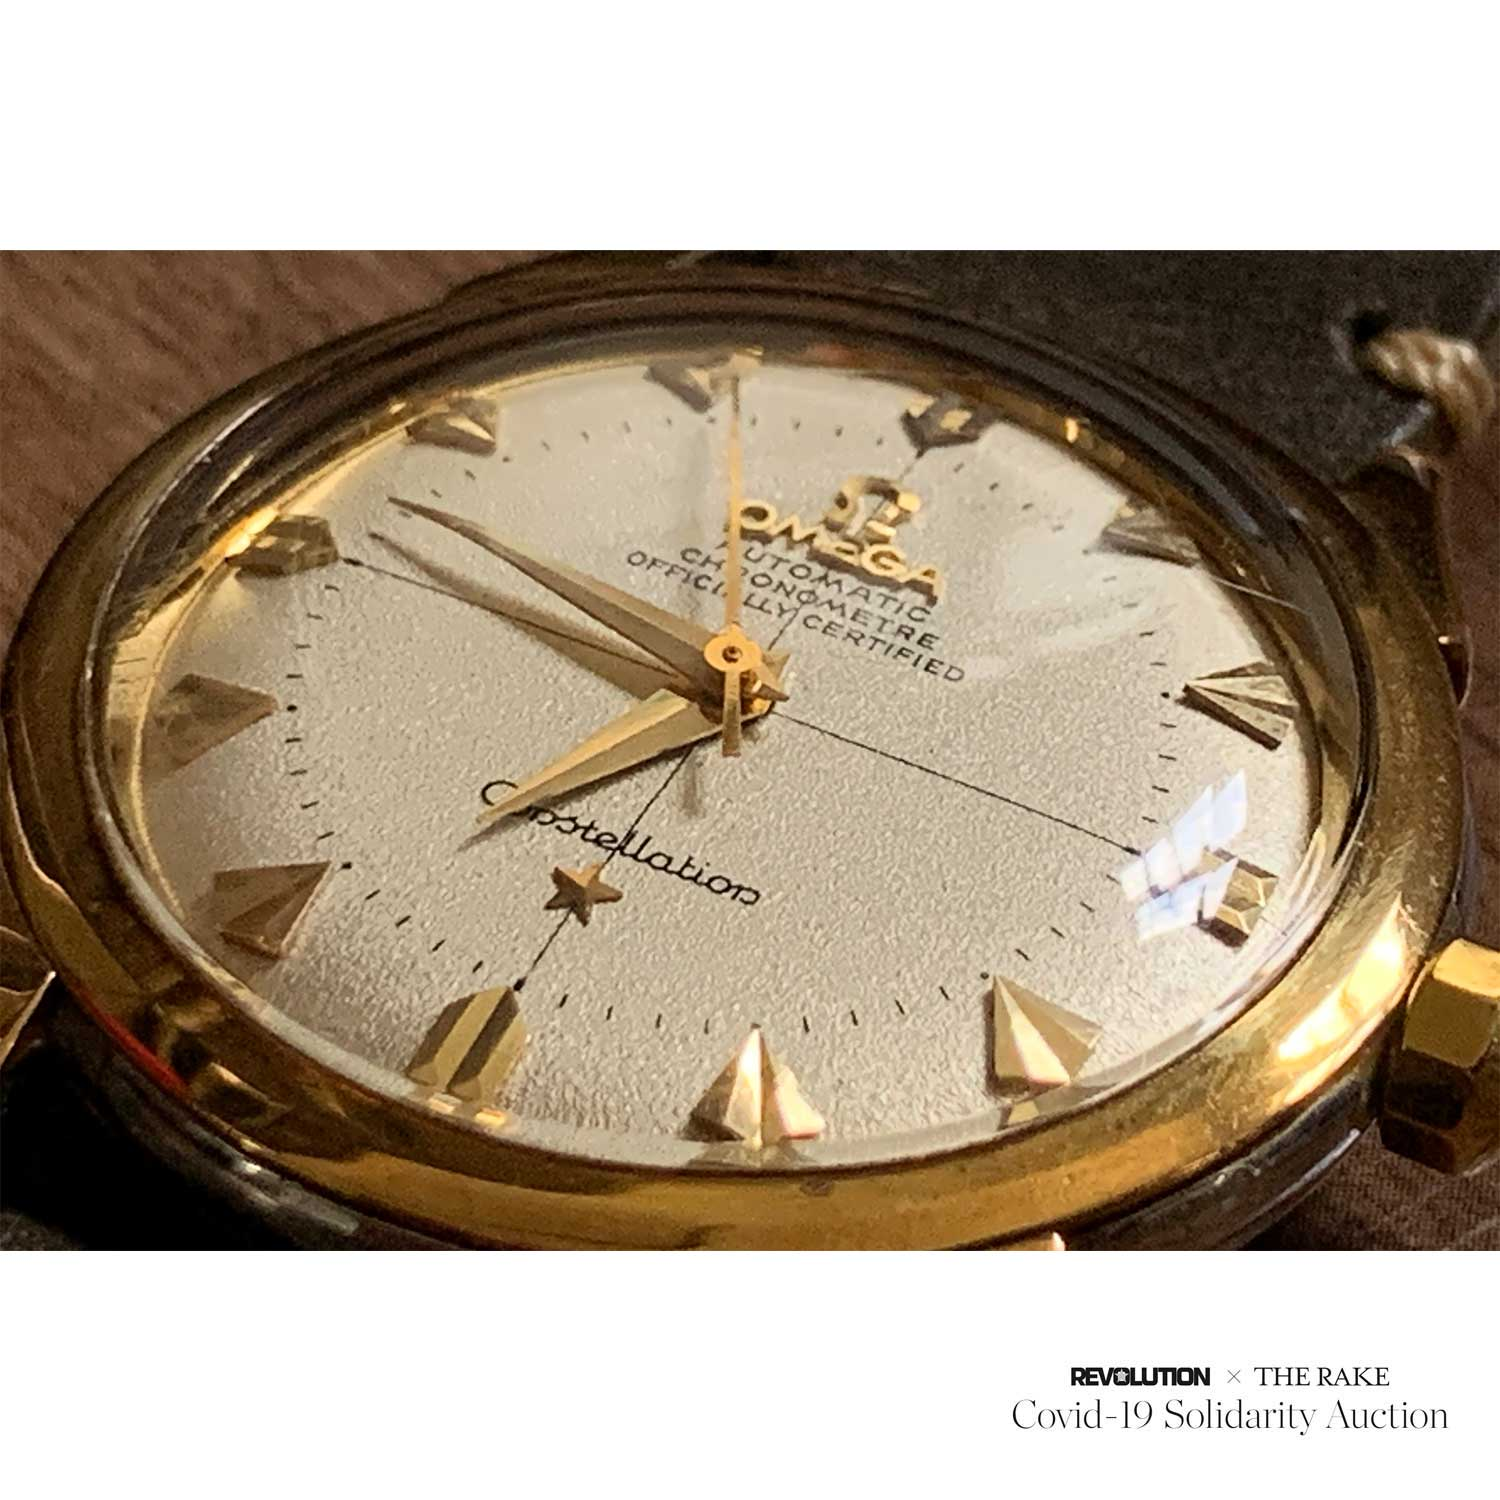 1954 Omega Constellation ref. 2782-6SC, Jose R. Bueiz Girona's personal timepiece donated to the Revolution x The Rake Covid-19 Solidarity Auction